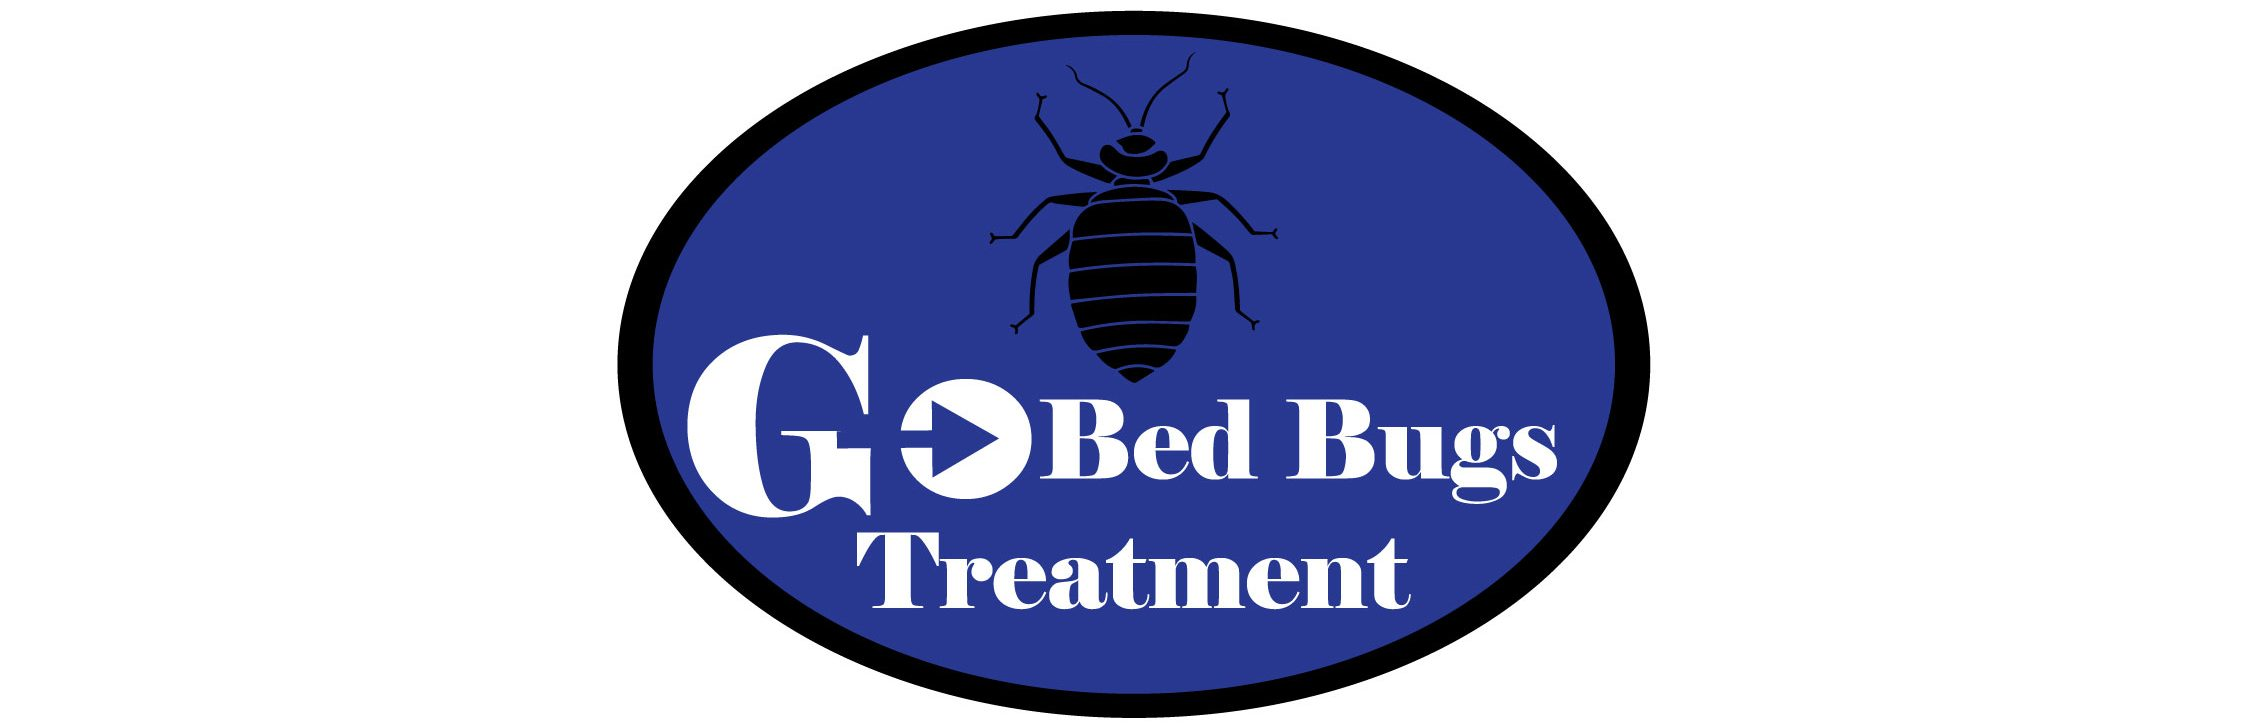 Go Bed Bugs Treatment